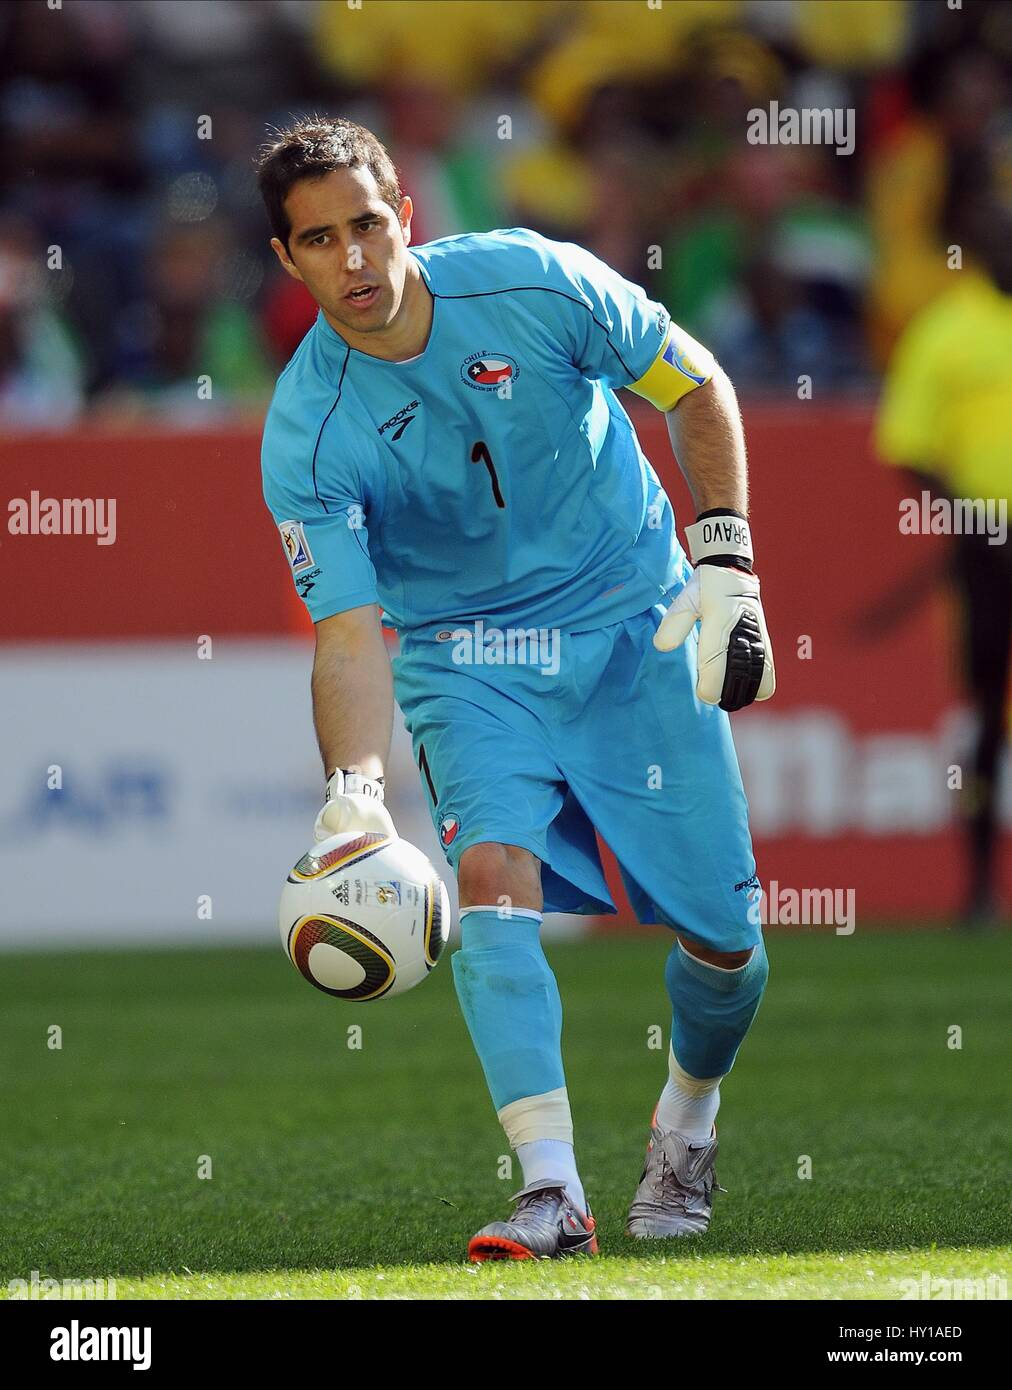 CLAUDIO BRAVO CHILE & REAL SOCIEDAD CHILE & REAL SOCIEDAD MBOMBELA STADIUM  SOUTH AFRICA 16 June 2010 - Stock Image